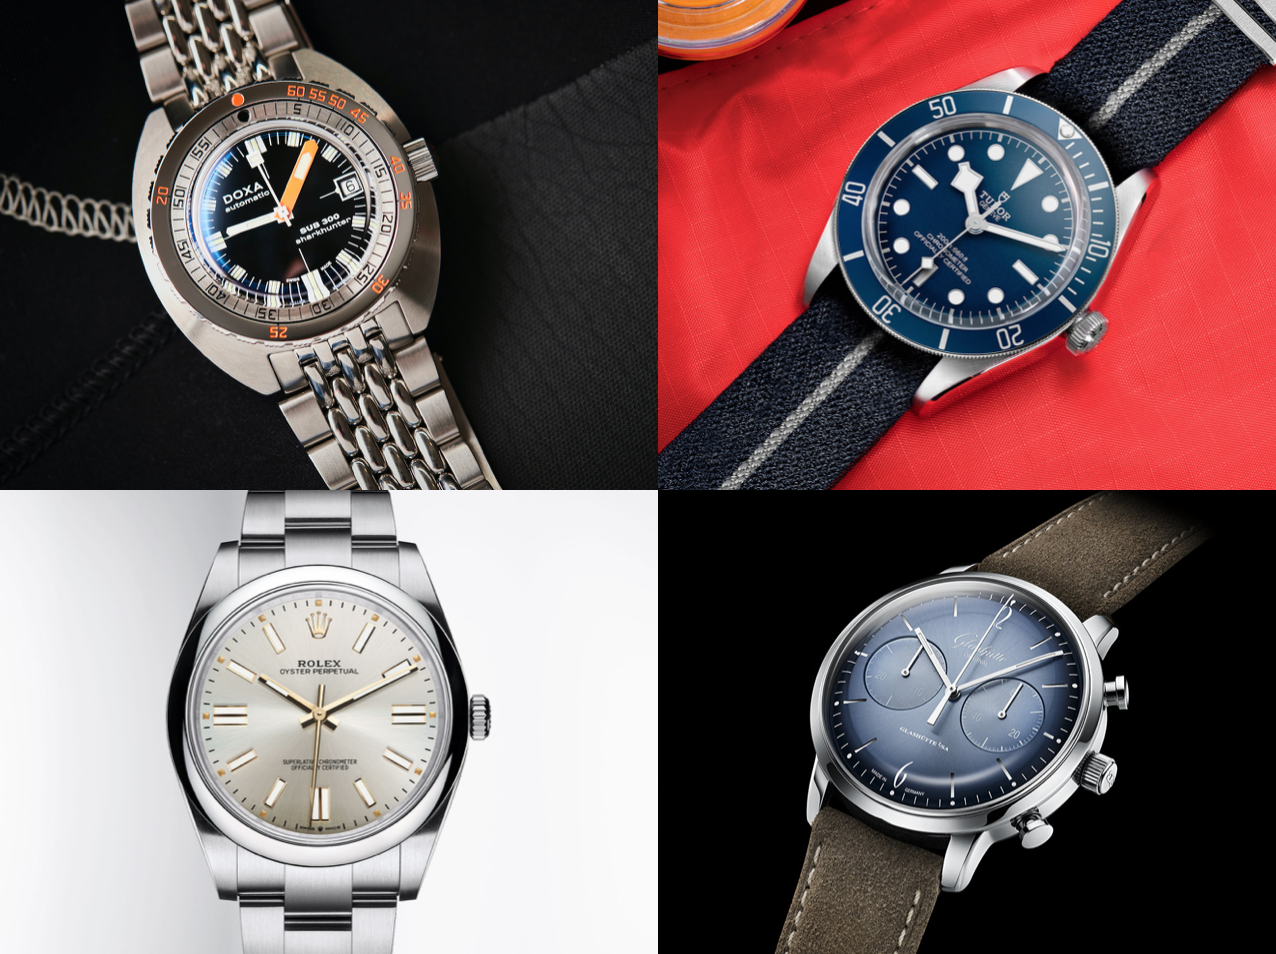 $10k 2020 watch collection